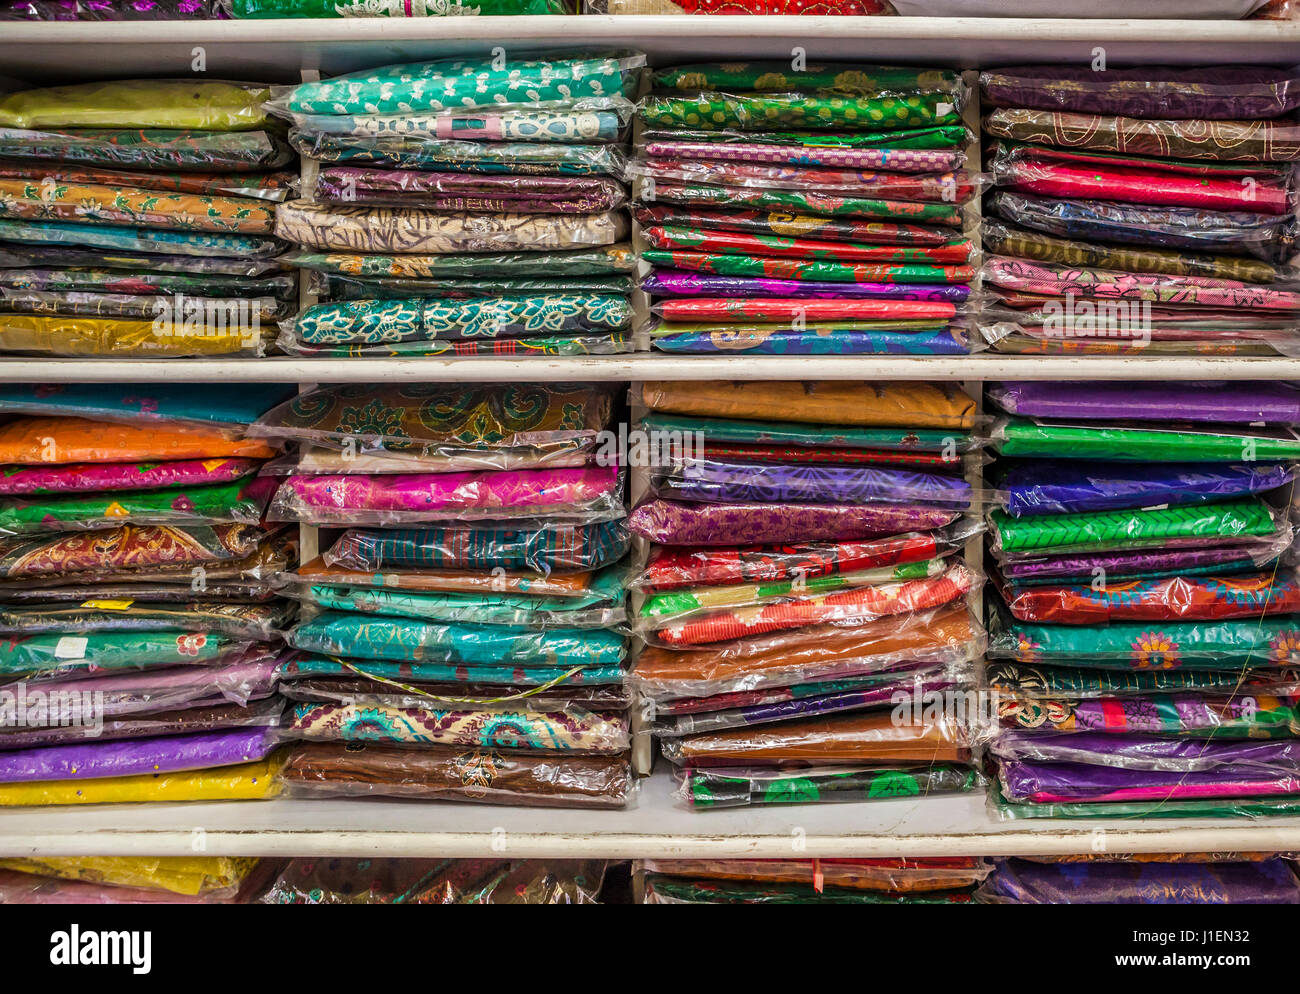 Shelves stocked with colorful clothing at a wedding sari shop in Pune, India. - Stock Image